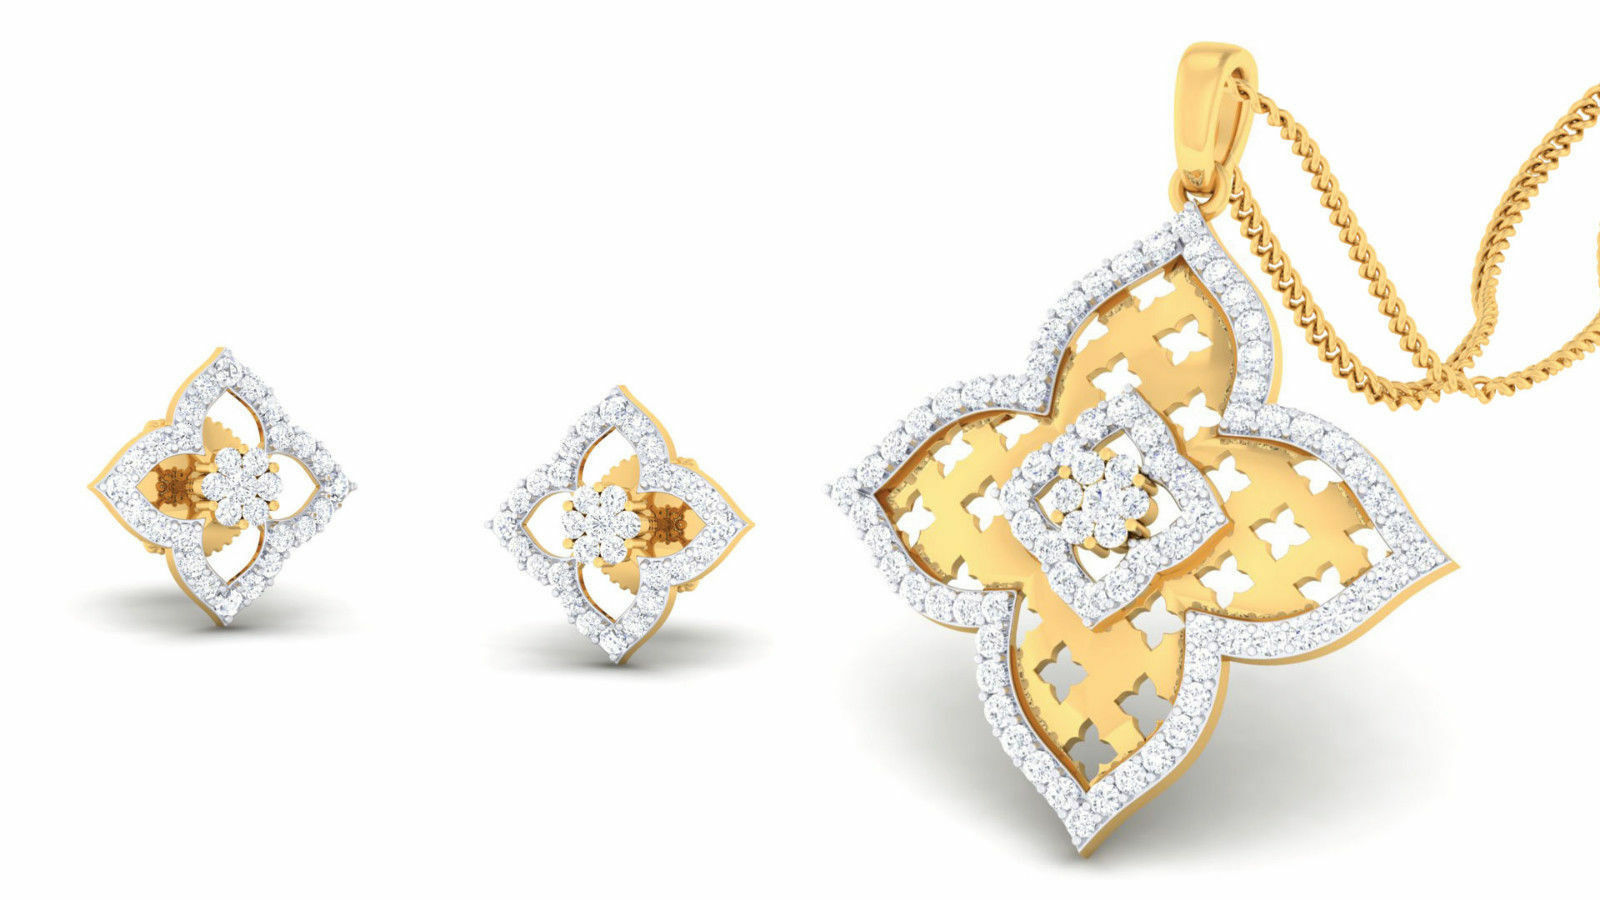 Pave 1.16 Cts Natural Diamonds Pendant Earrings Set In Solid 14Karat Yellow gold